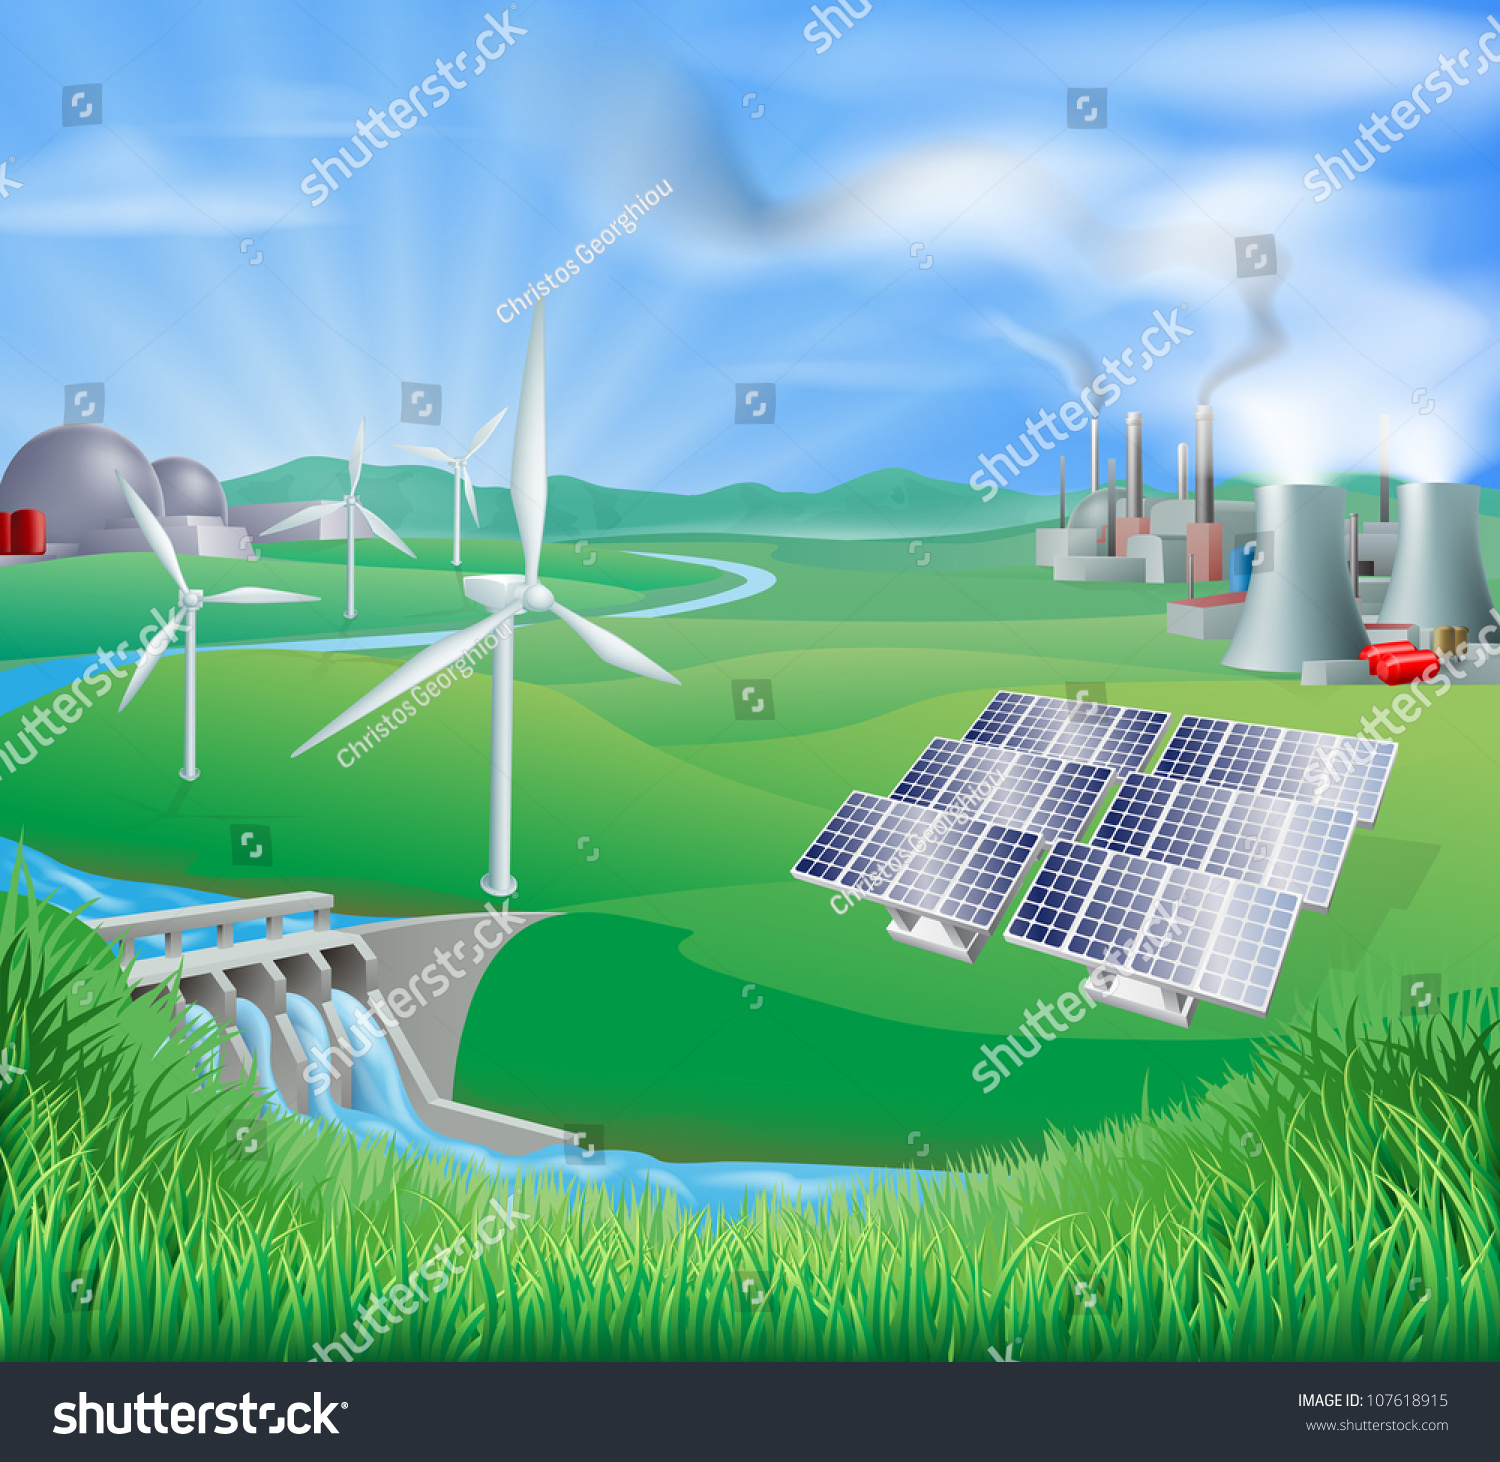 essay renewable energy sources Sustainable energy sources essay 5554 words | 23 pages accomplishing this energy output level coal, oil, gas, nuclear fuel are all limited fossil resources, and in.